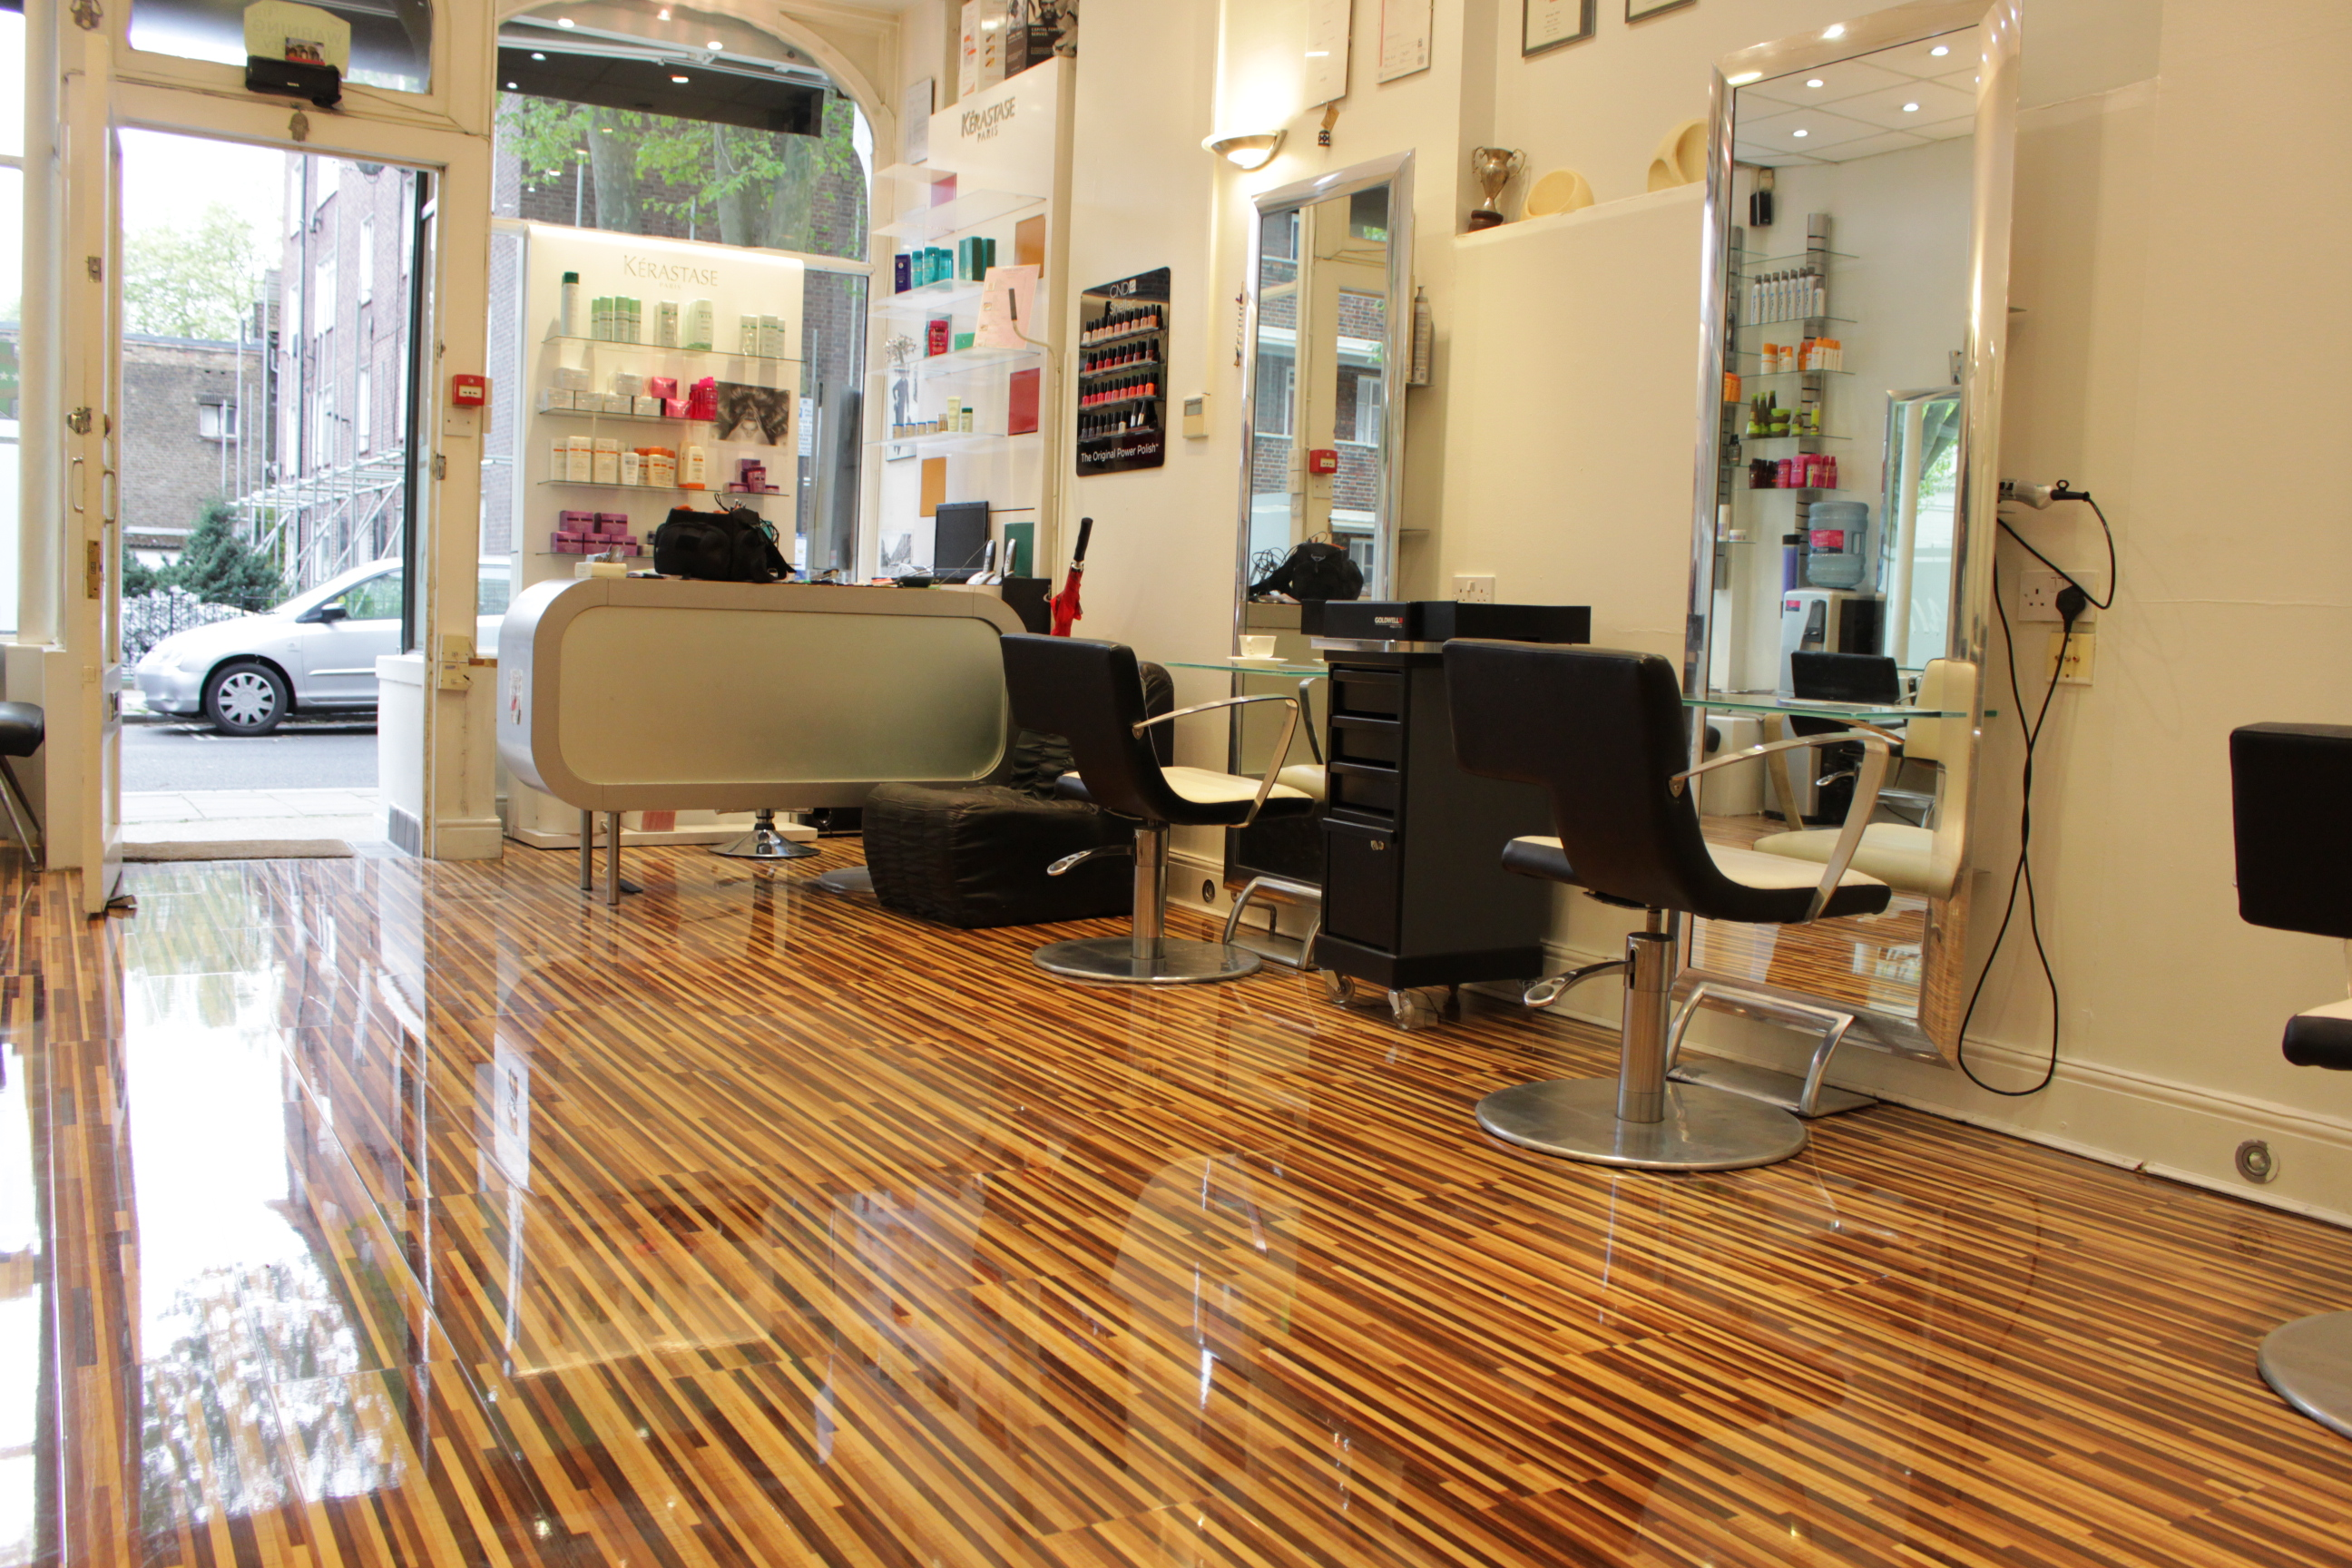 Upmarket St Johns Wood Hair Salon Installs Designer